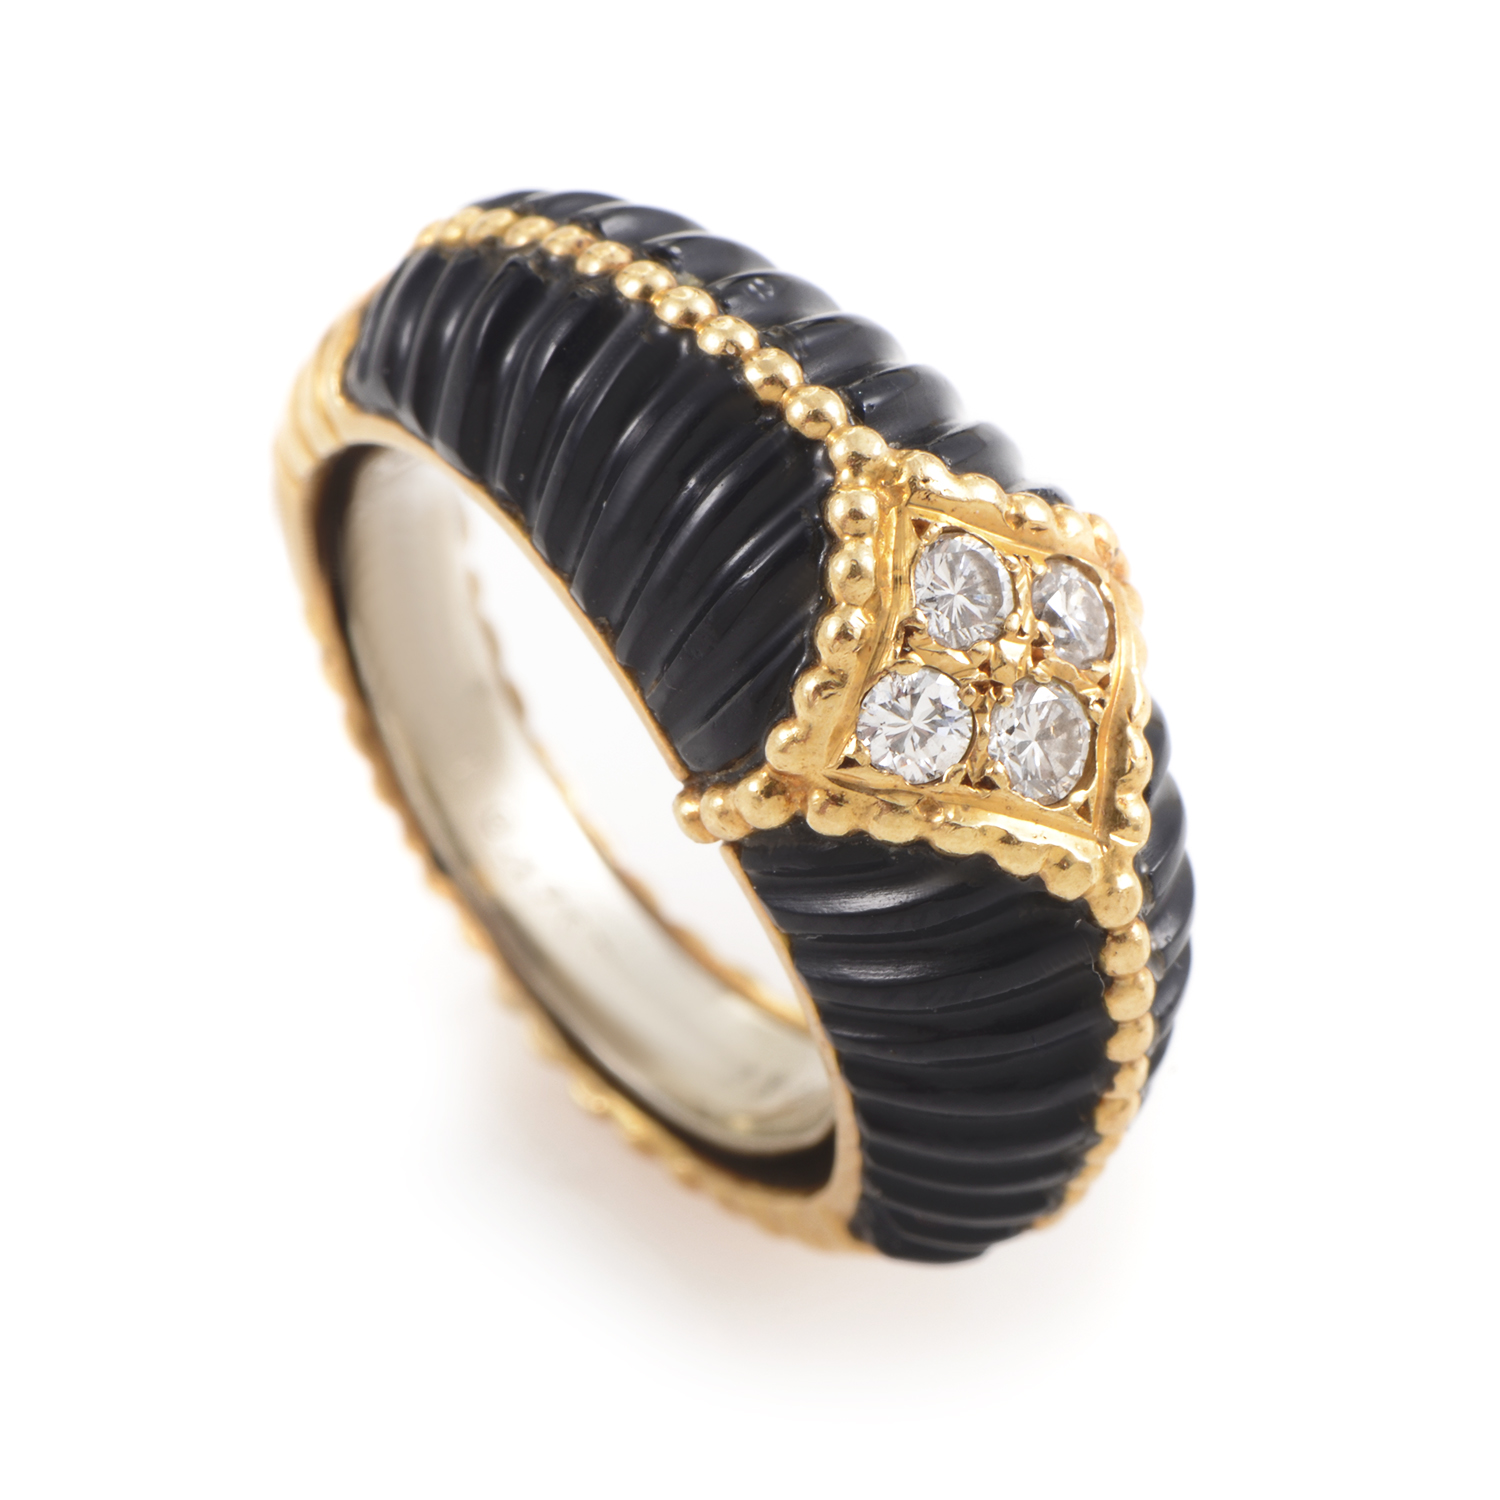 Van Cleef & Arpels 18K Yellow Gold Diamond & Onyx Band